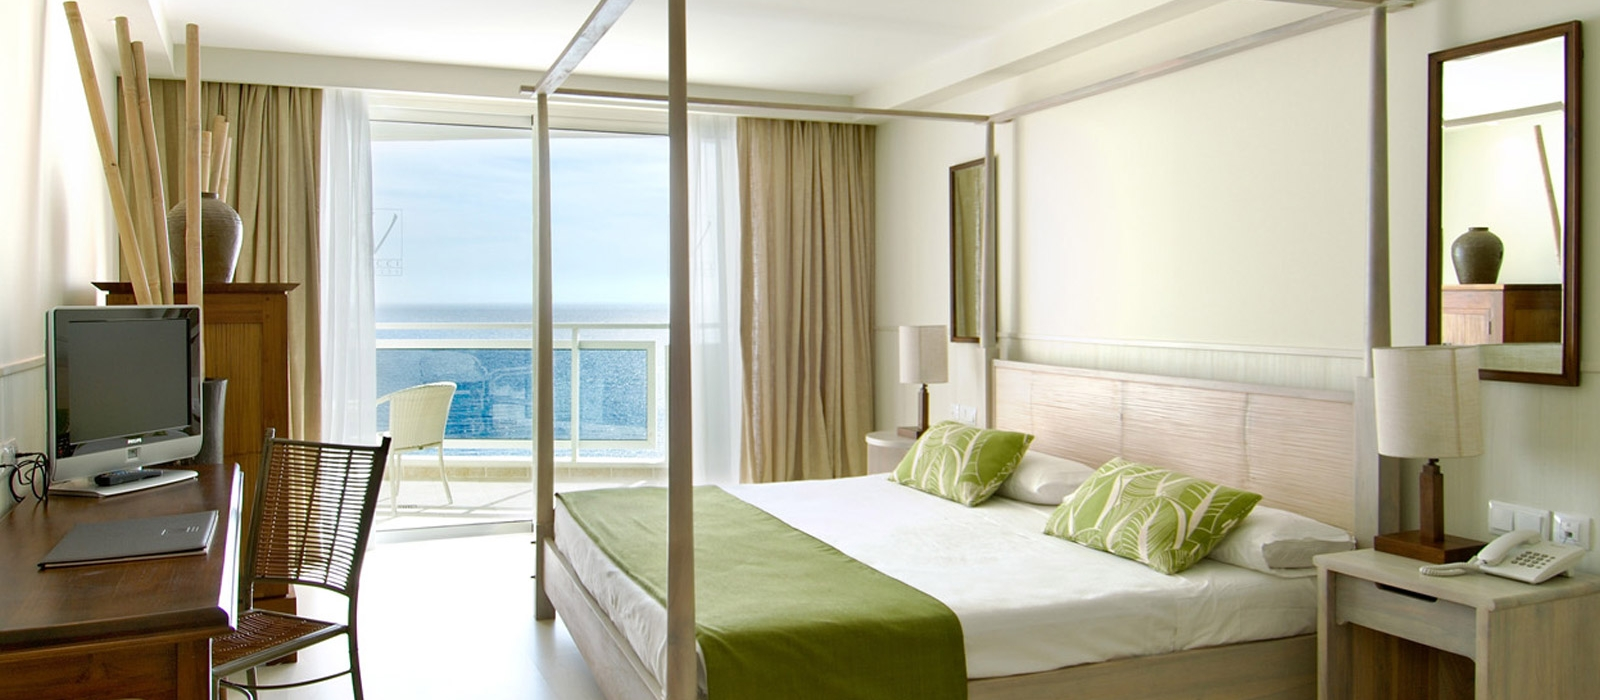 Rooms Hotel Tenerife Golf - Vincci Hotels - Junior Suite